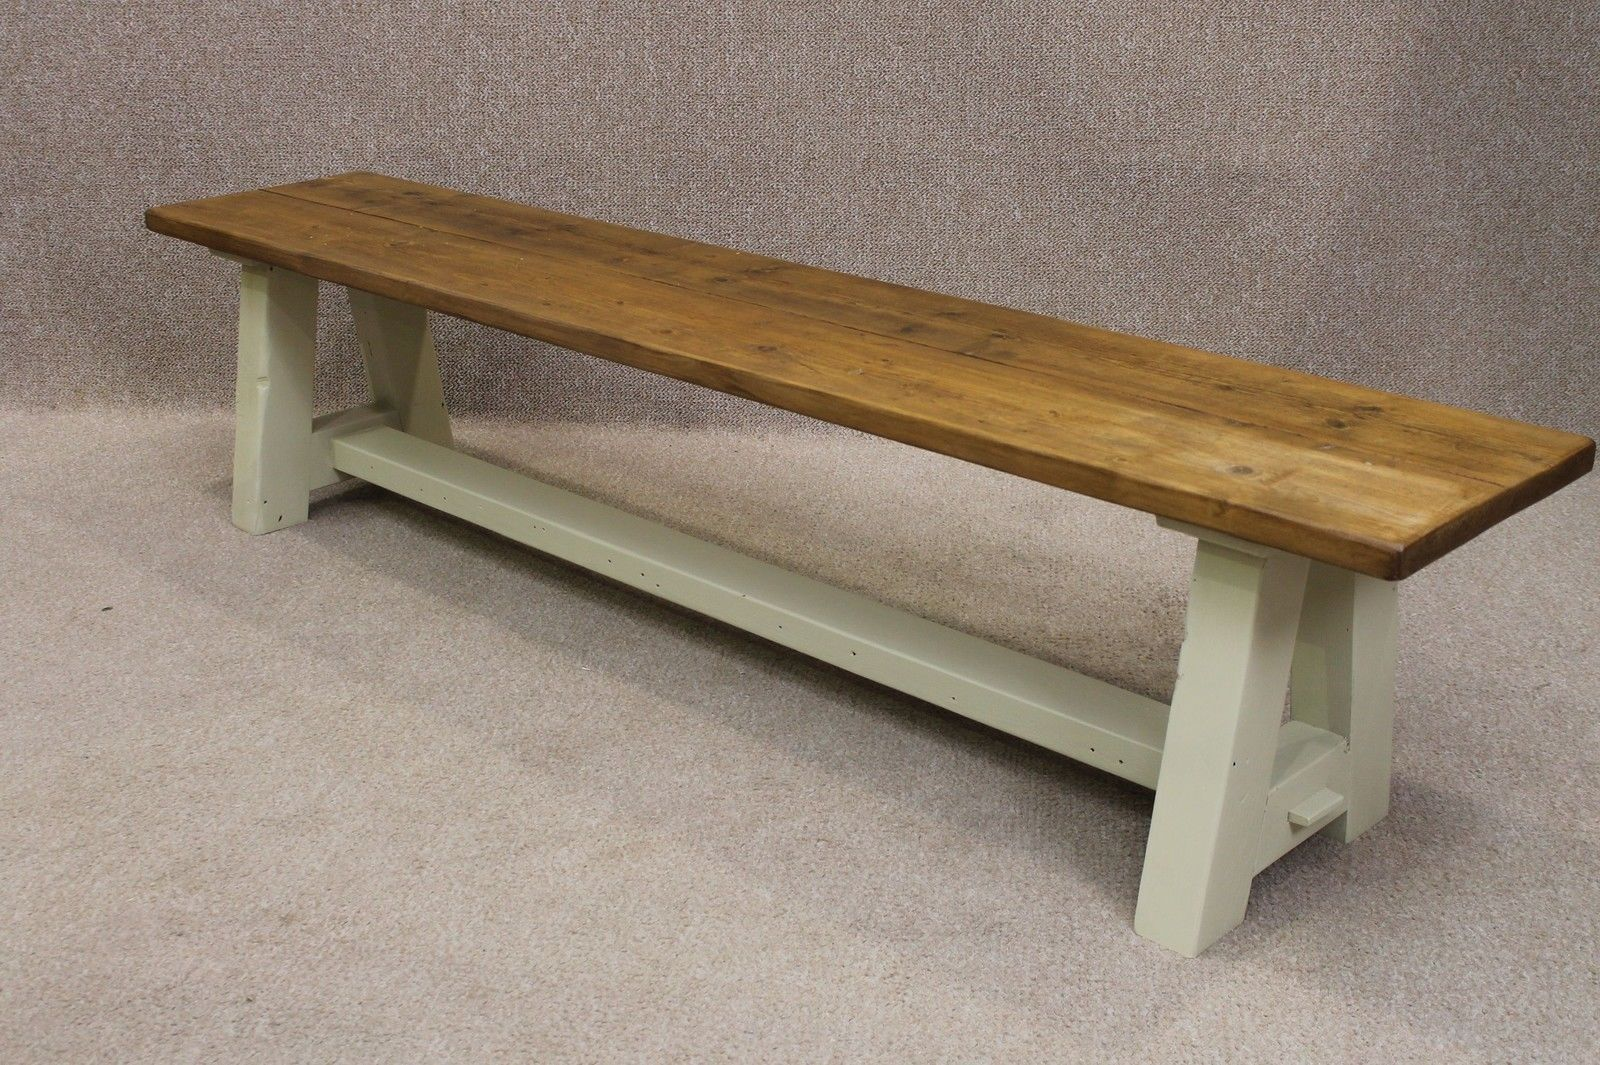 Pine Kitchen Bench Unfinished Cabinet Doors Rustic 6ft Hall Dining With A Painted Base In Antiques Antique Furniture Benches Stools Ebay